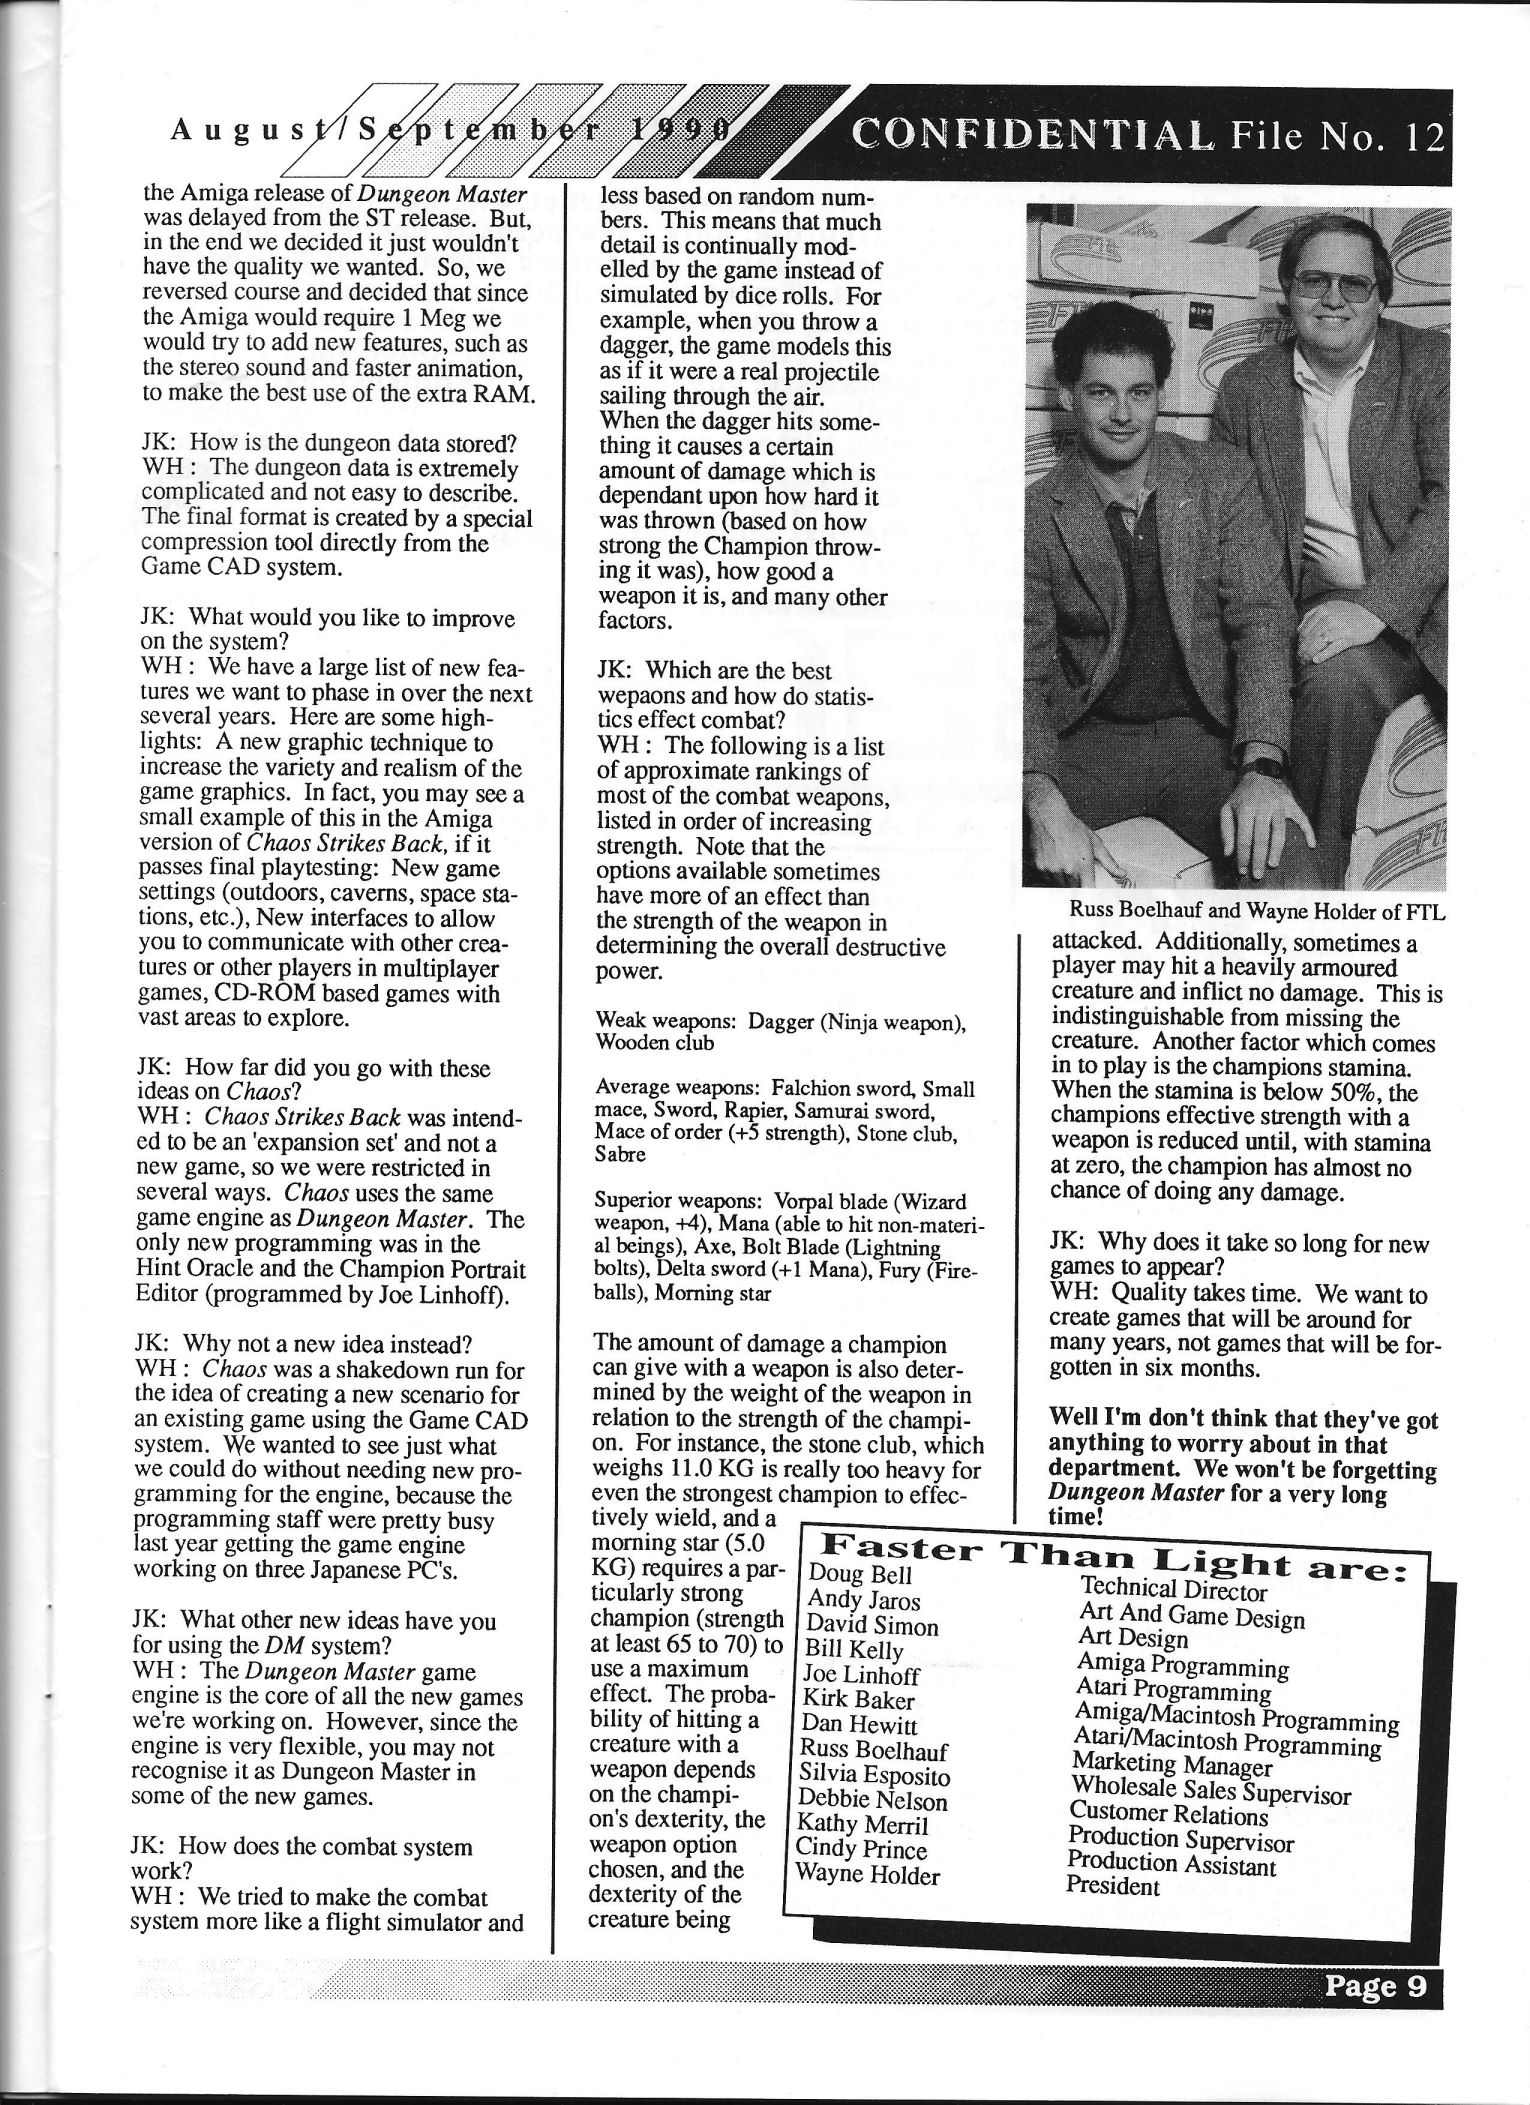 FTL Article published in British magazine 'Confidential', Issue #12 August-September 1990, Page 9